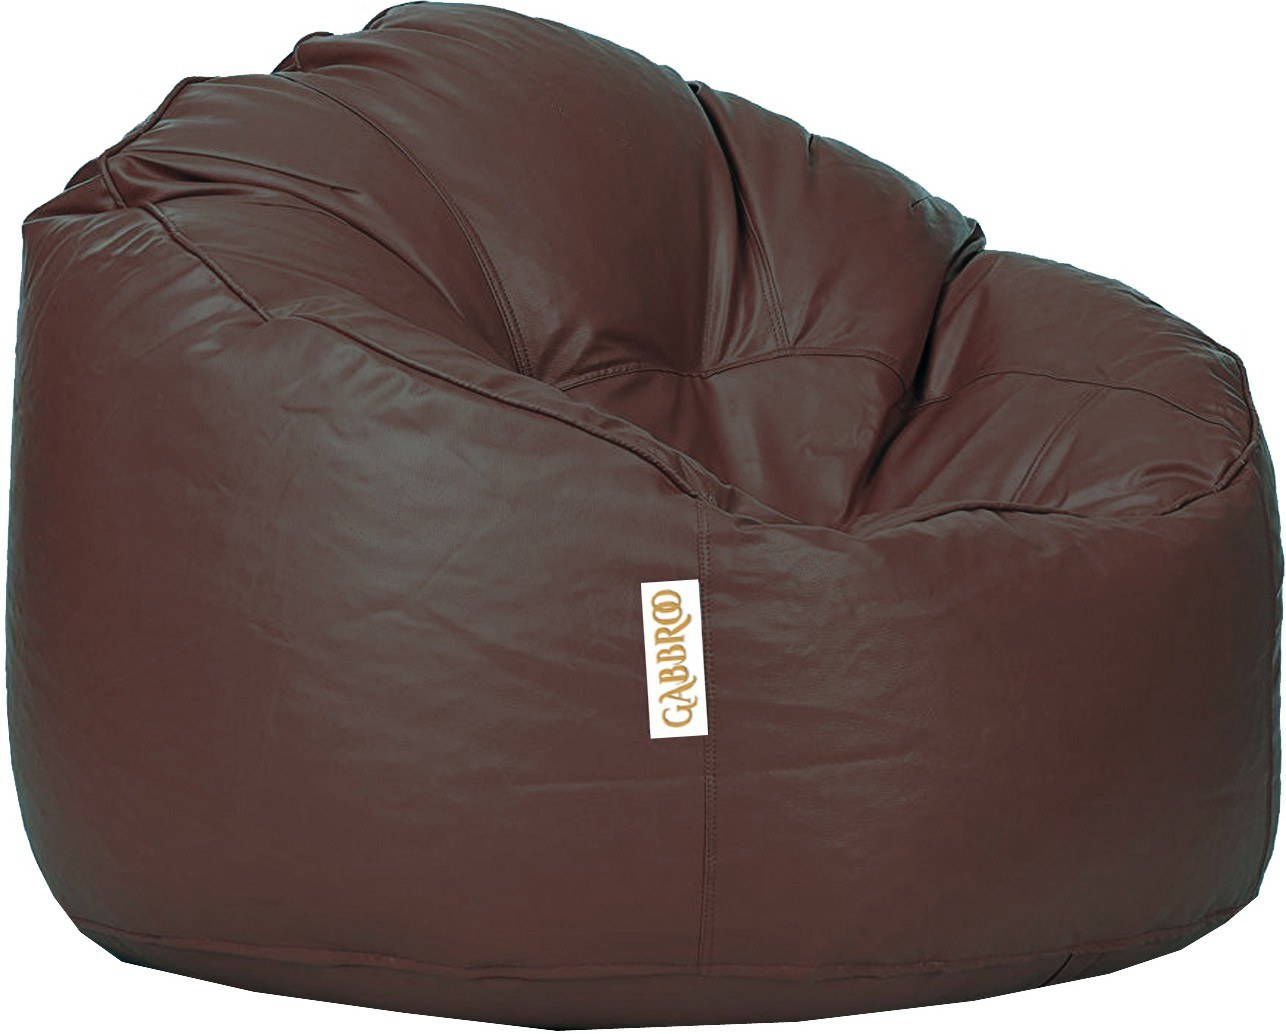 View Gabbroo XXXL Lounger Bean Bag  With Bean Filling(Brown) Furniture (Gabbroo)